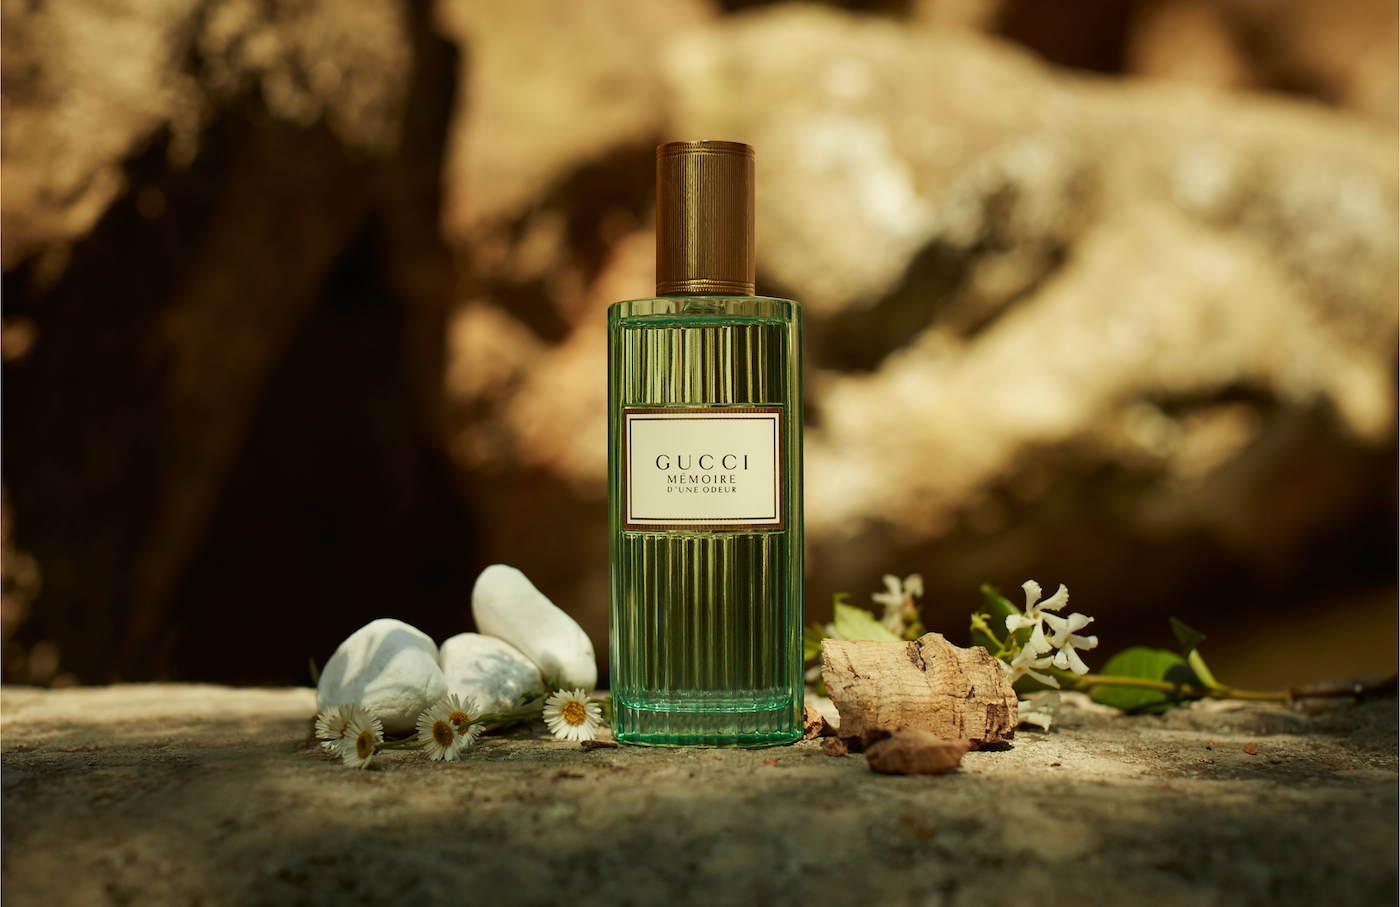 Bvlgari Man introduces the Wood Neroli, a fragrance inspired